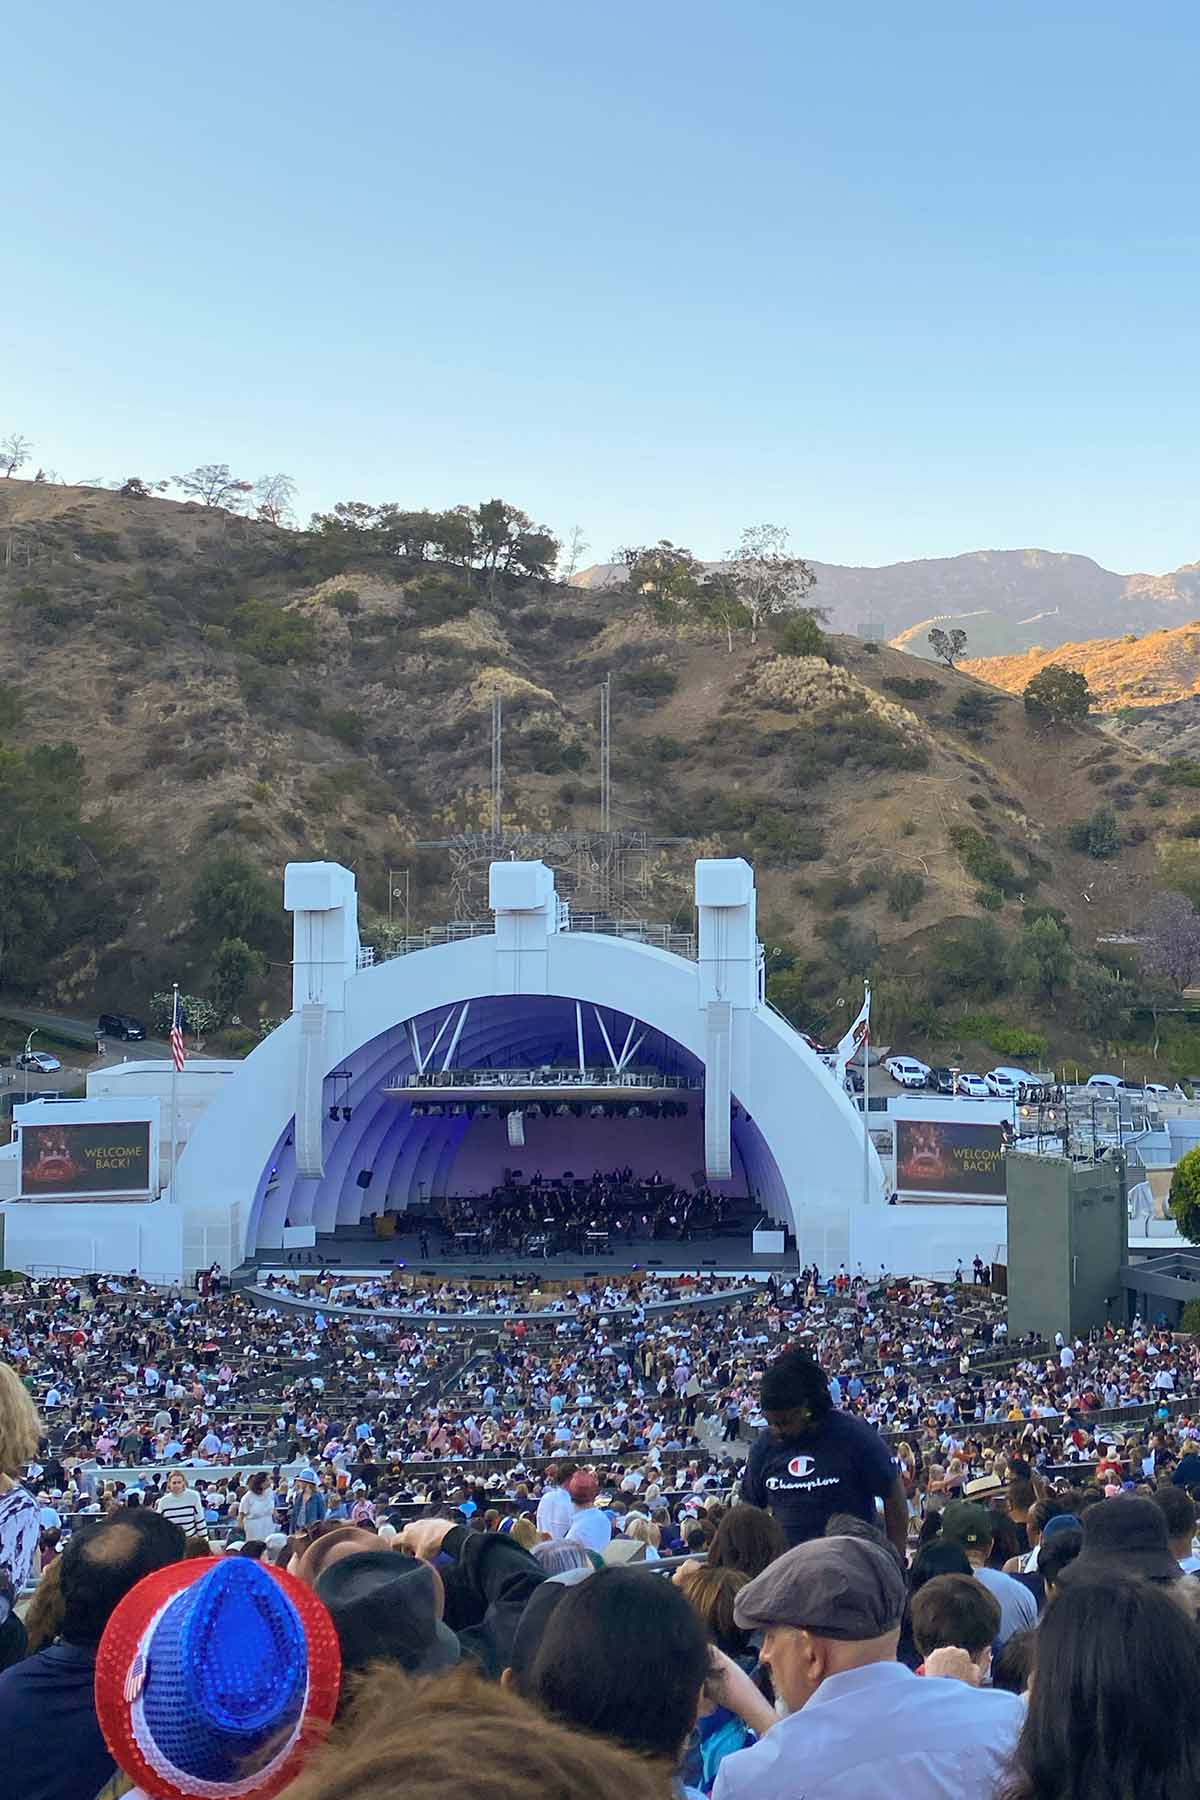 the Hollywood Bowl at dusk on a clear day